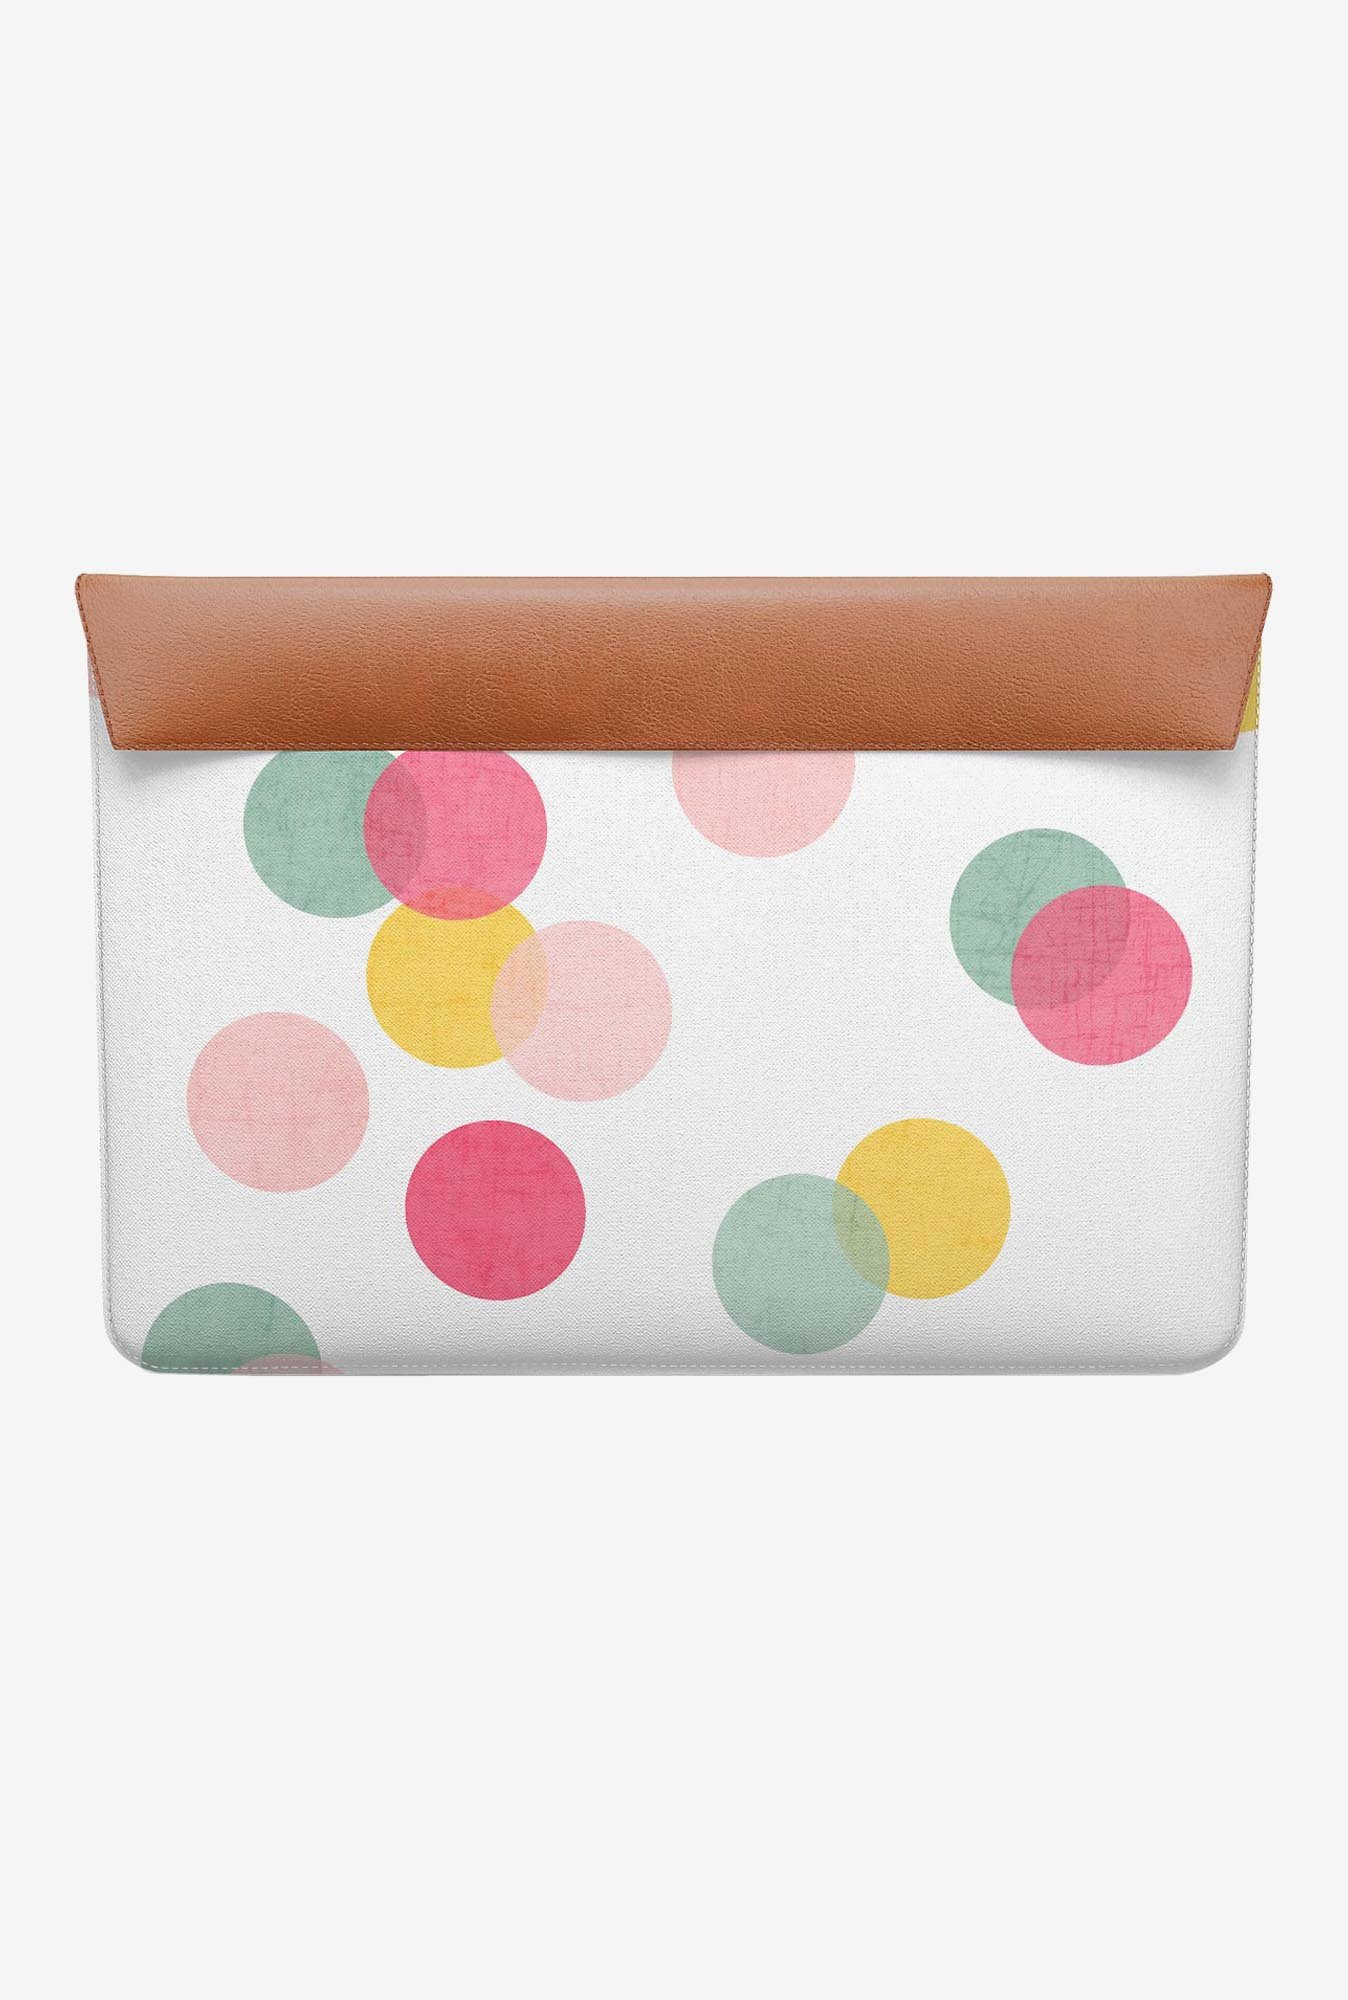 DailyObjects Confetti MacBook Air 11 Envelope Sleeve